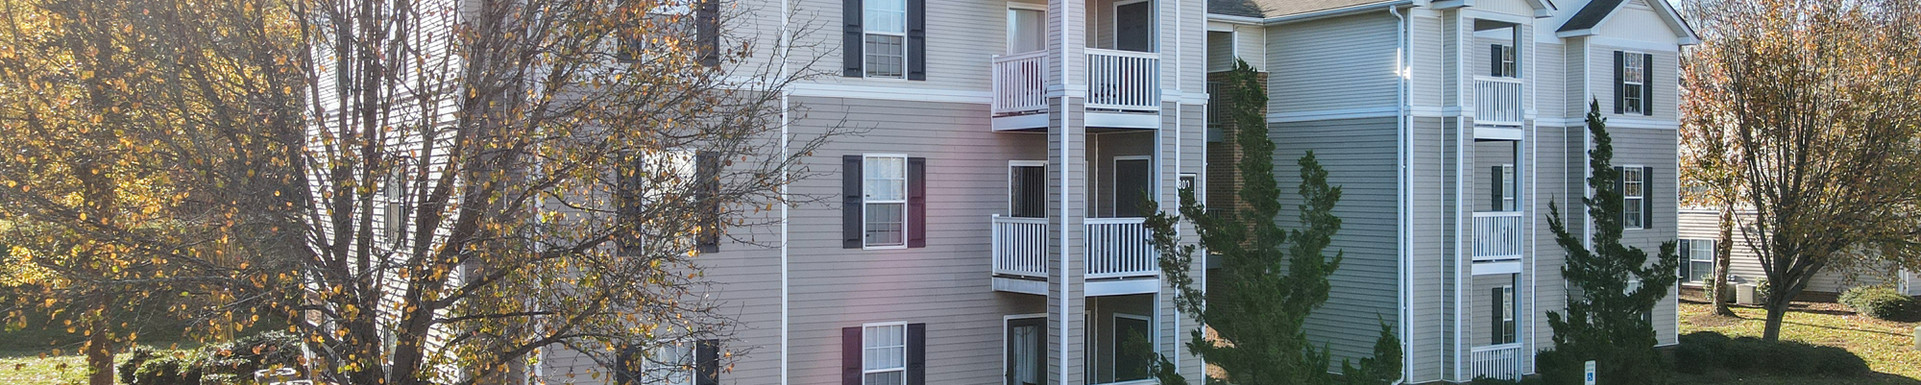 Concord Chase Apartments Exterior Photo